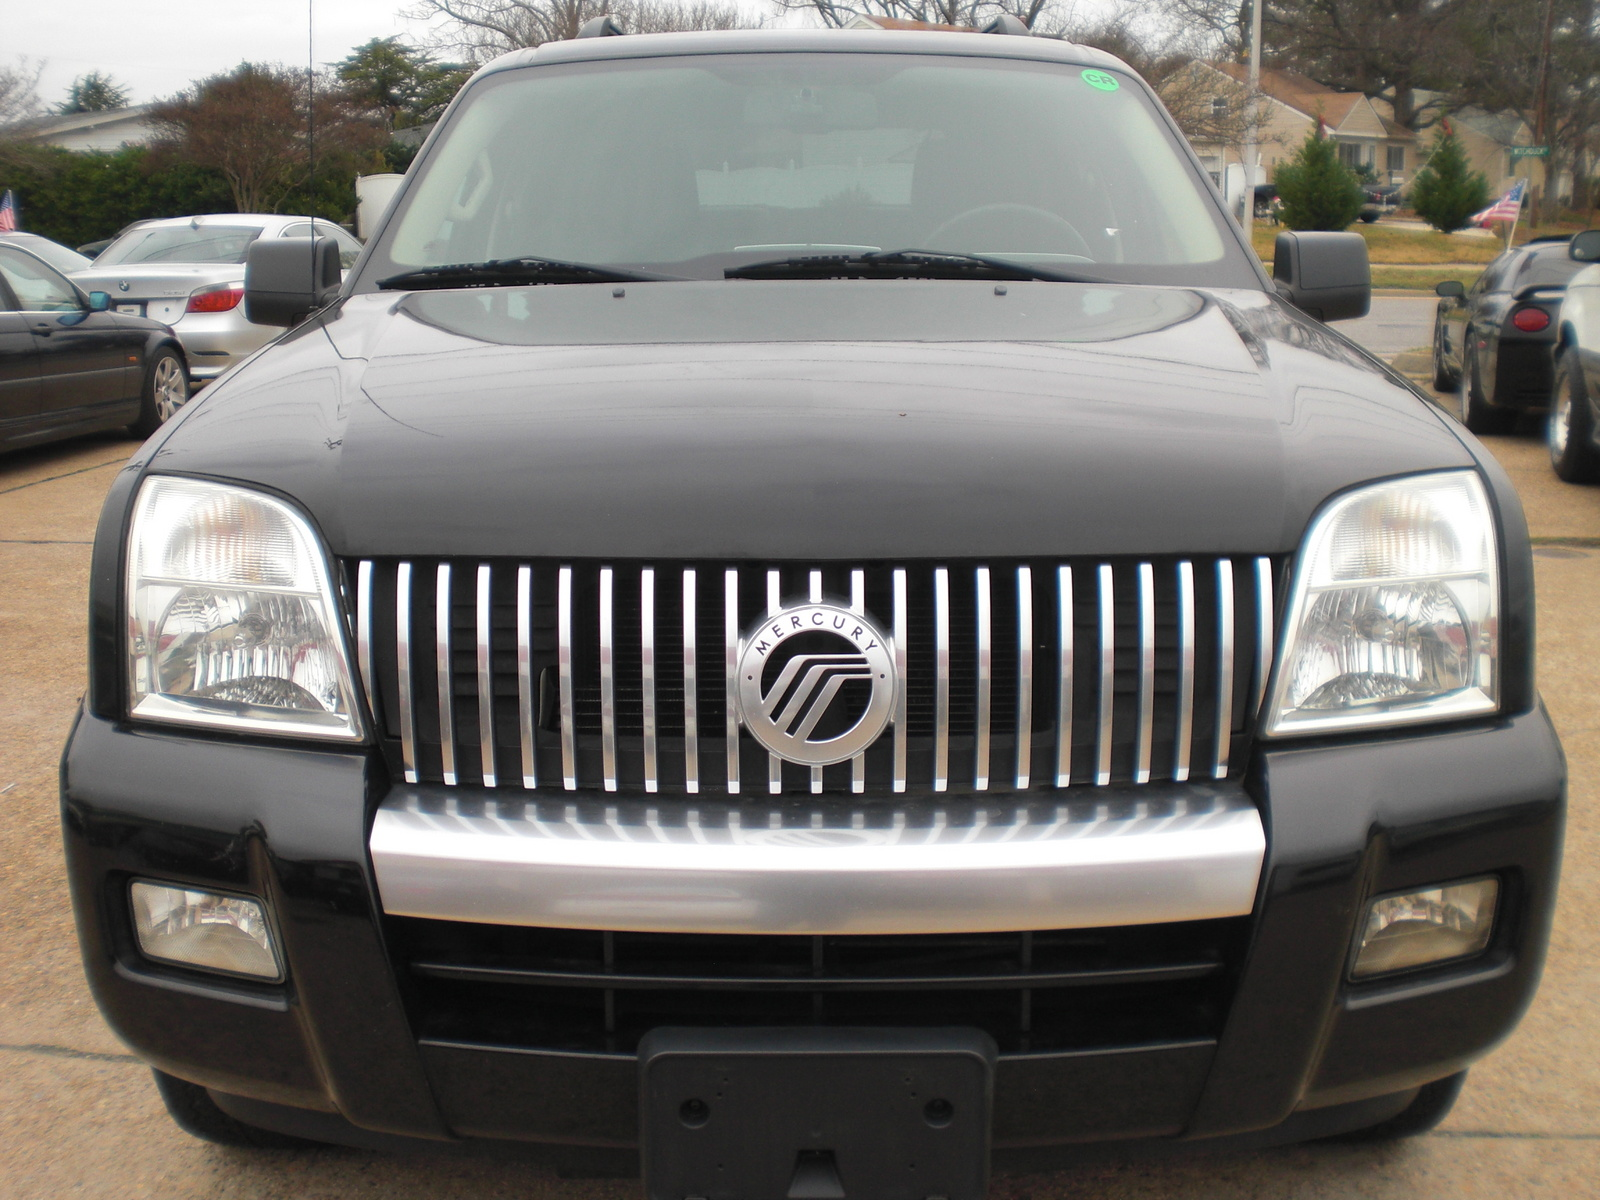 Picture of 2006 Mercury Mountaineer Luxury